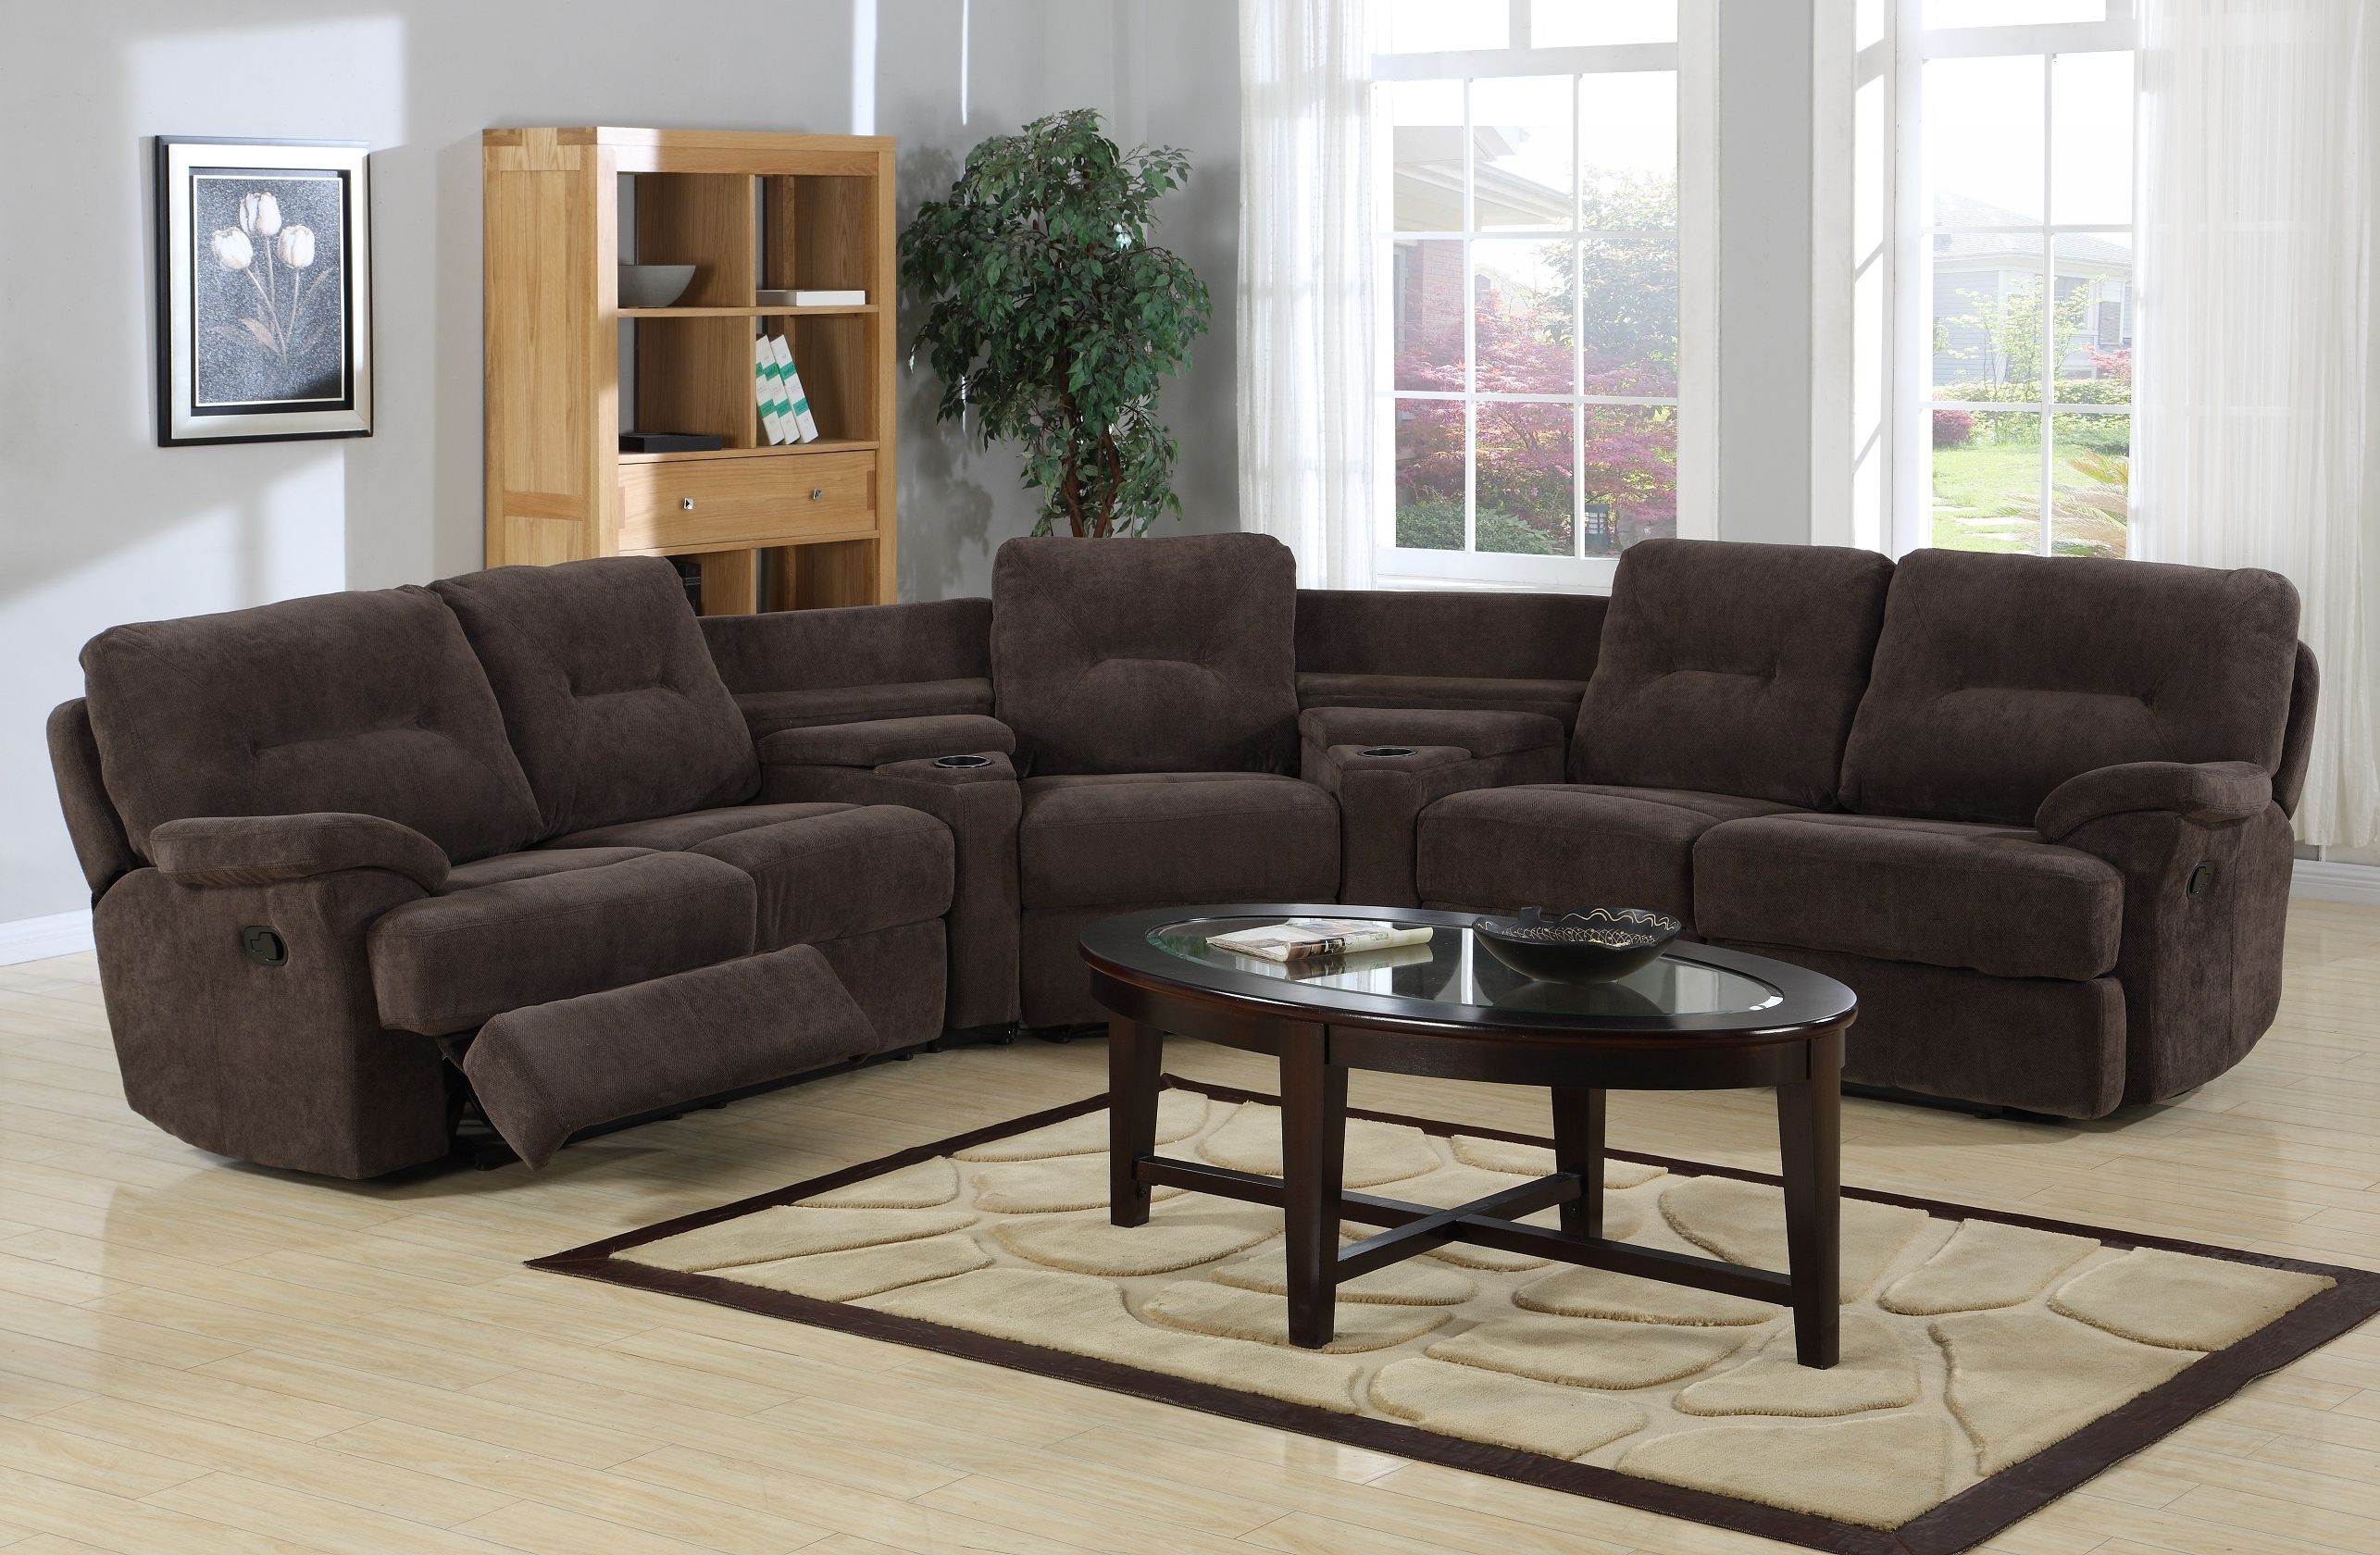 Curved Recliner Sofas Within Popular Sectional Sofa With Chaise Tags : Leather Sectional Sofa With (View 6 of 15)